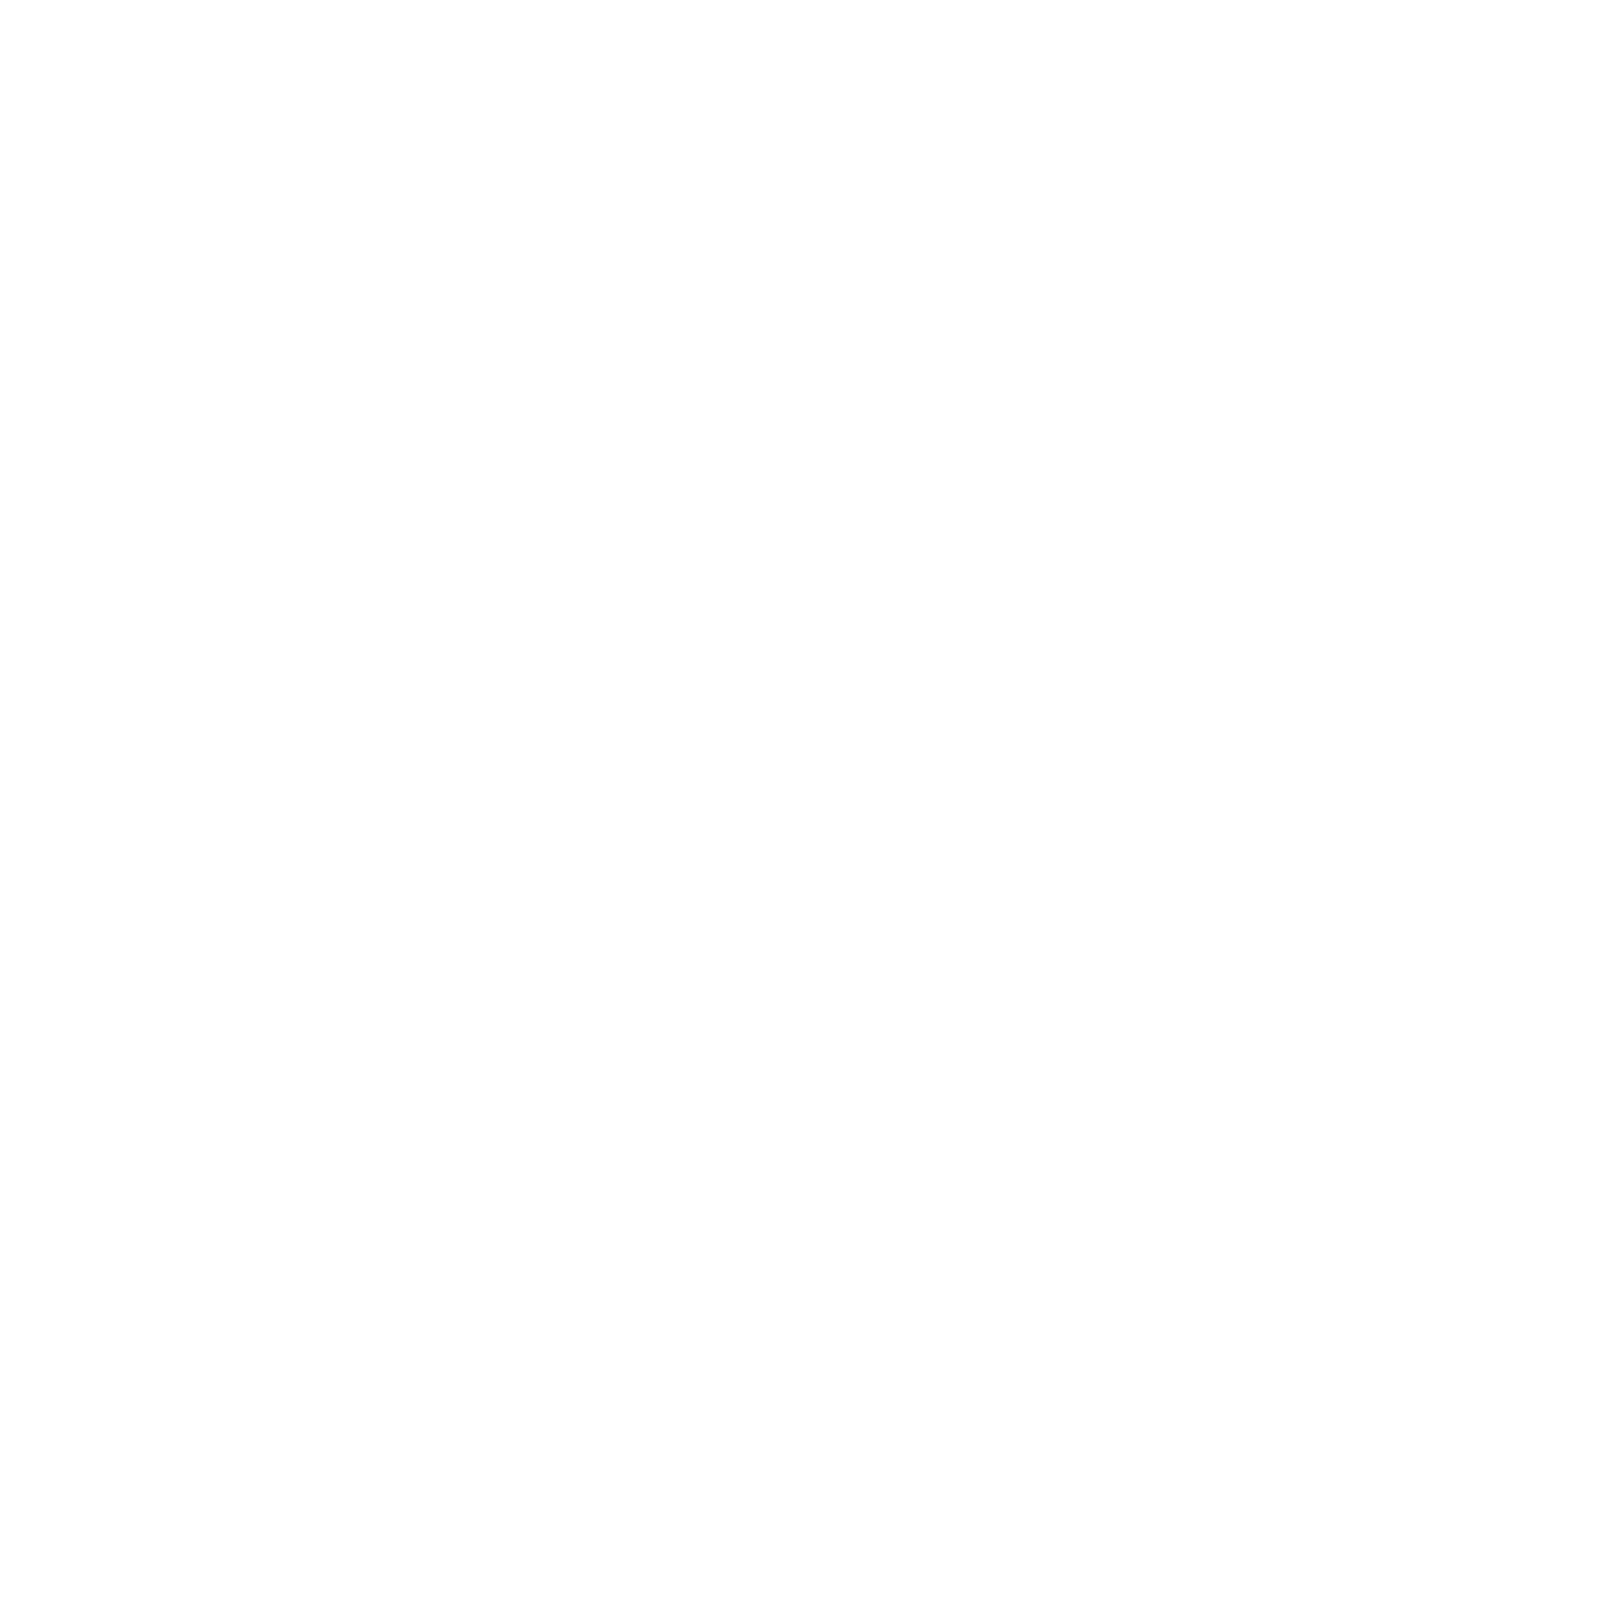 heathrow-project-logo